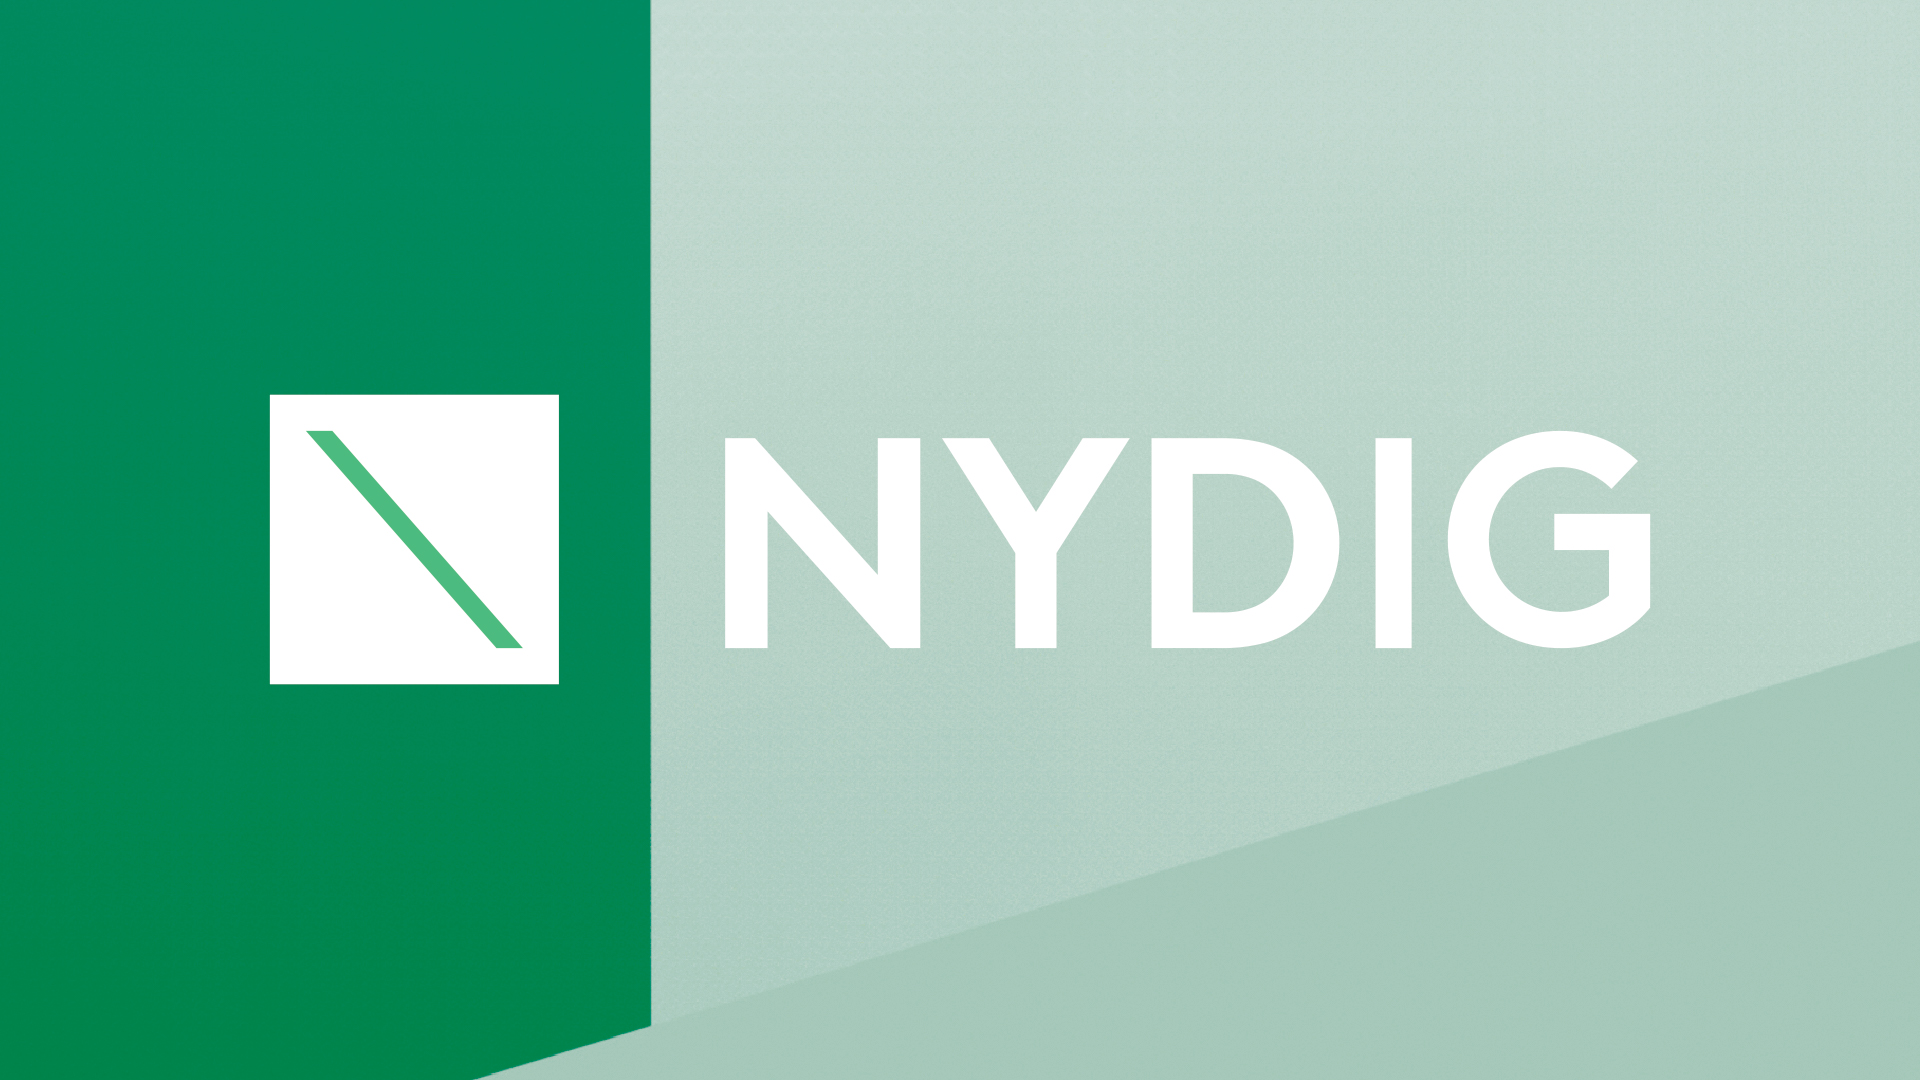 NYDIG expands its play to bridge bitcoin and banking with new partnerships